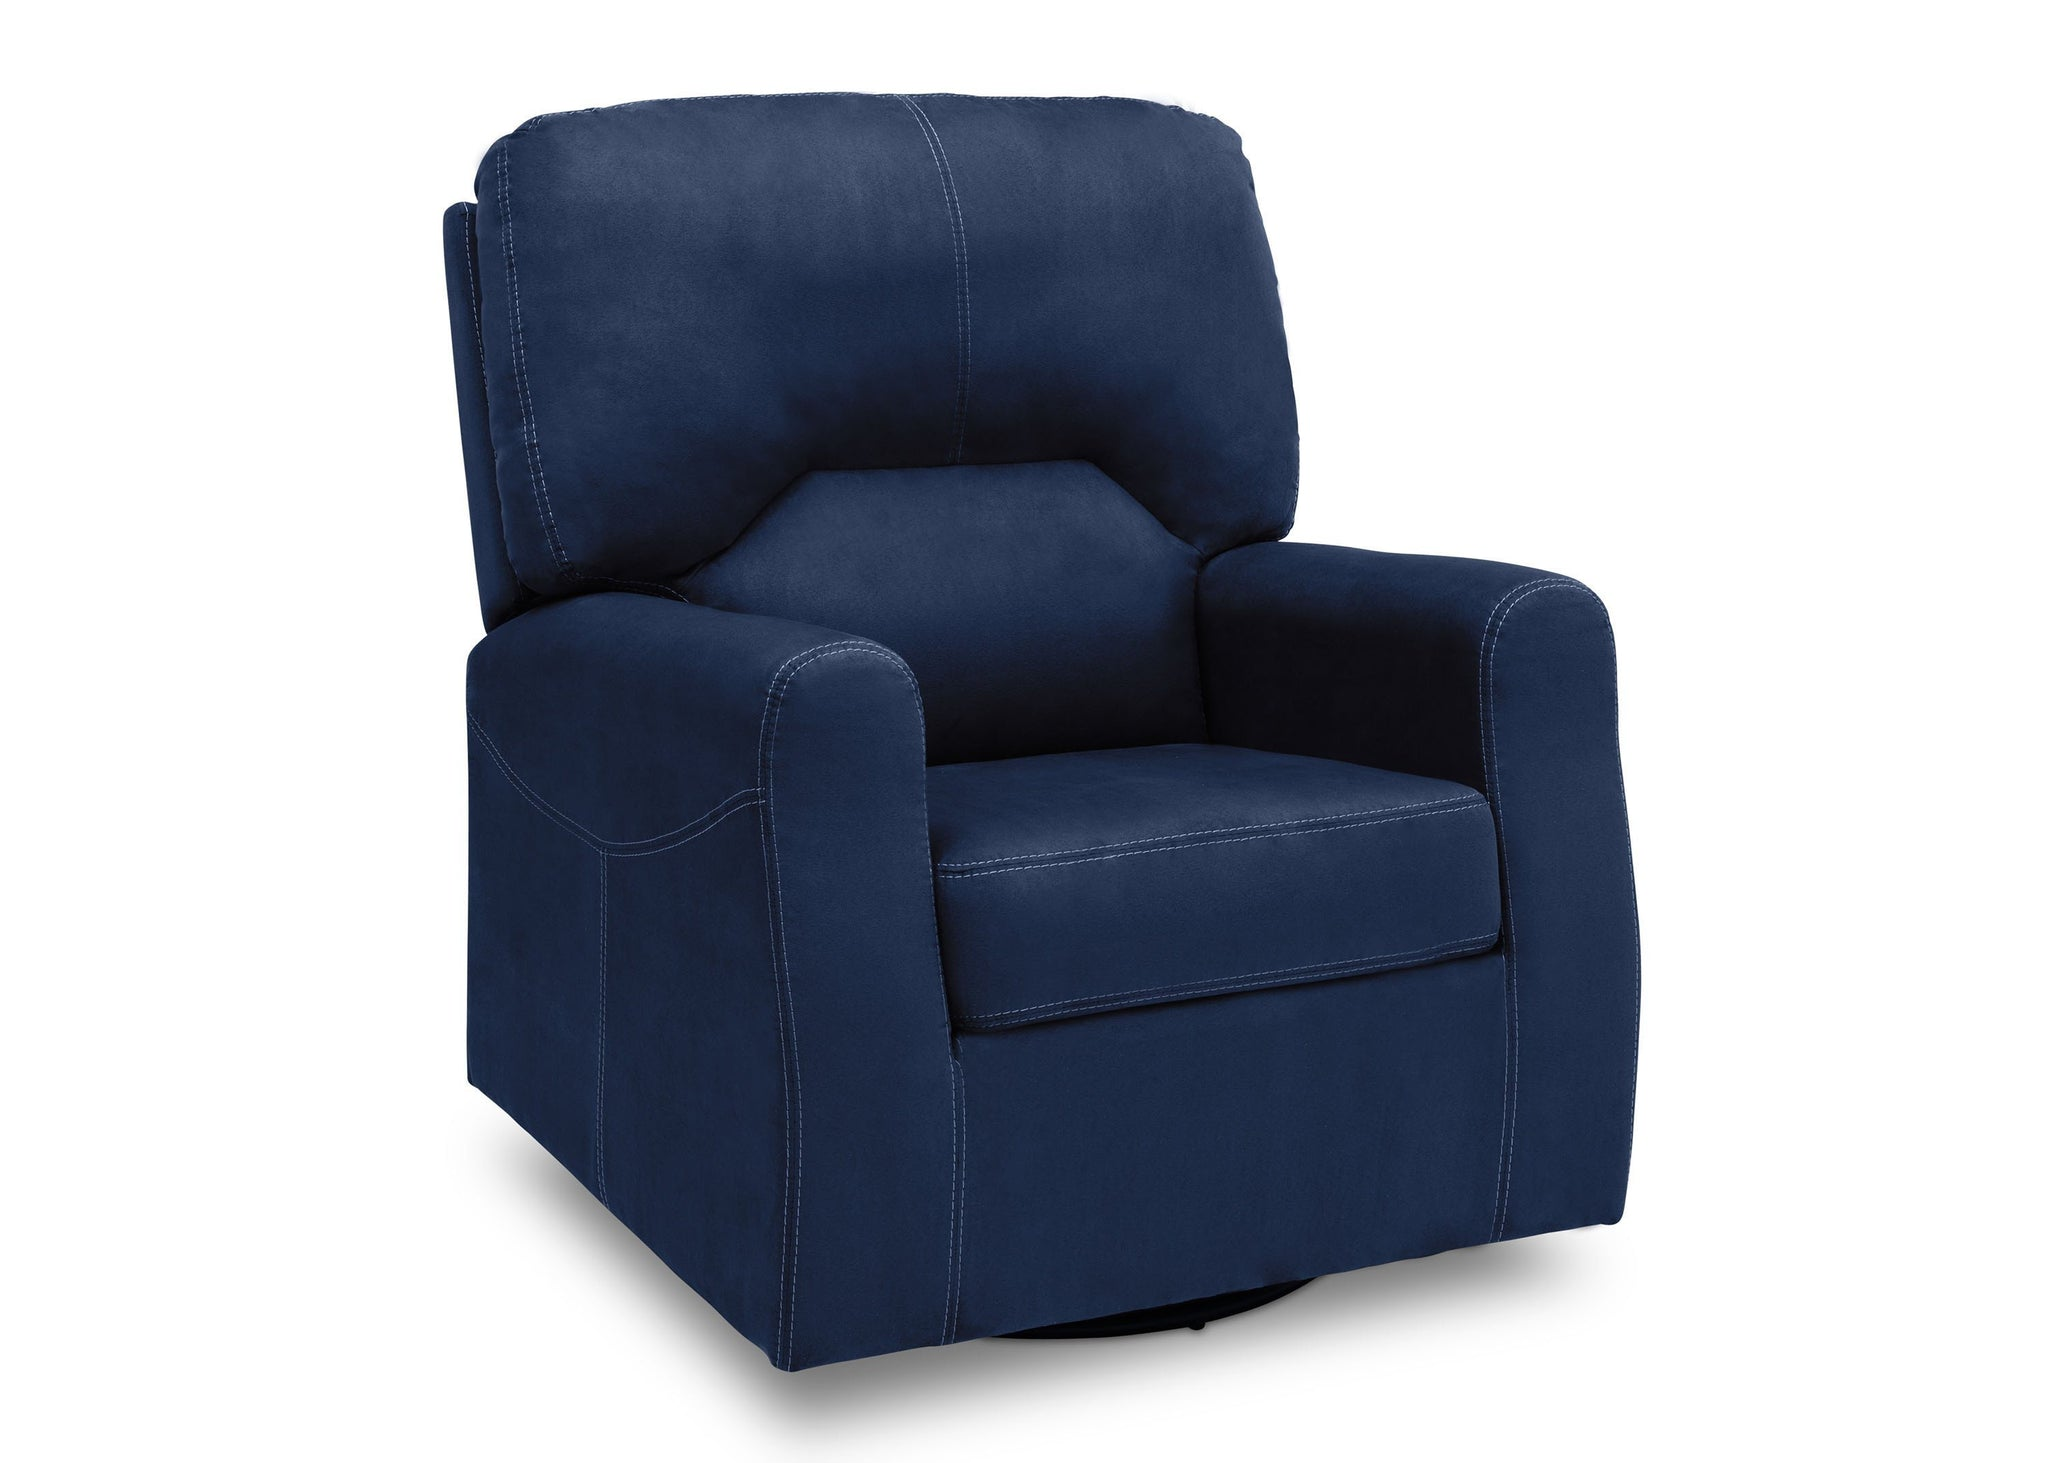 Delta Children Navy (467) Marshall Nursery Glider Swivel Rocker Chair, right side view, c3c